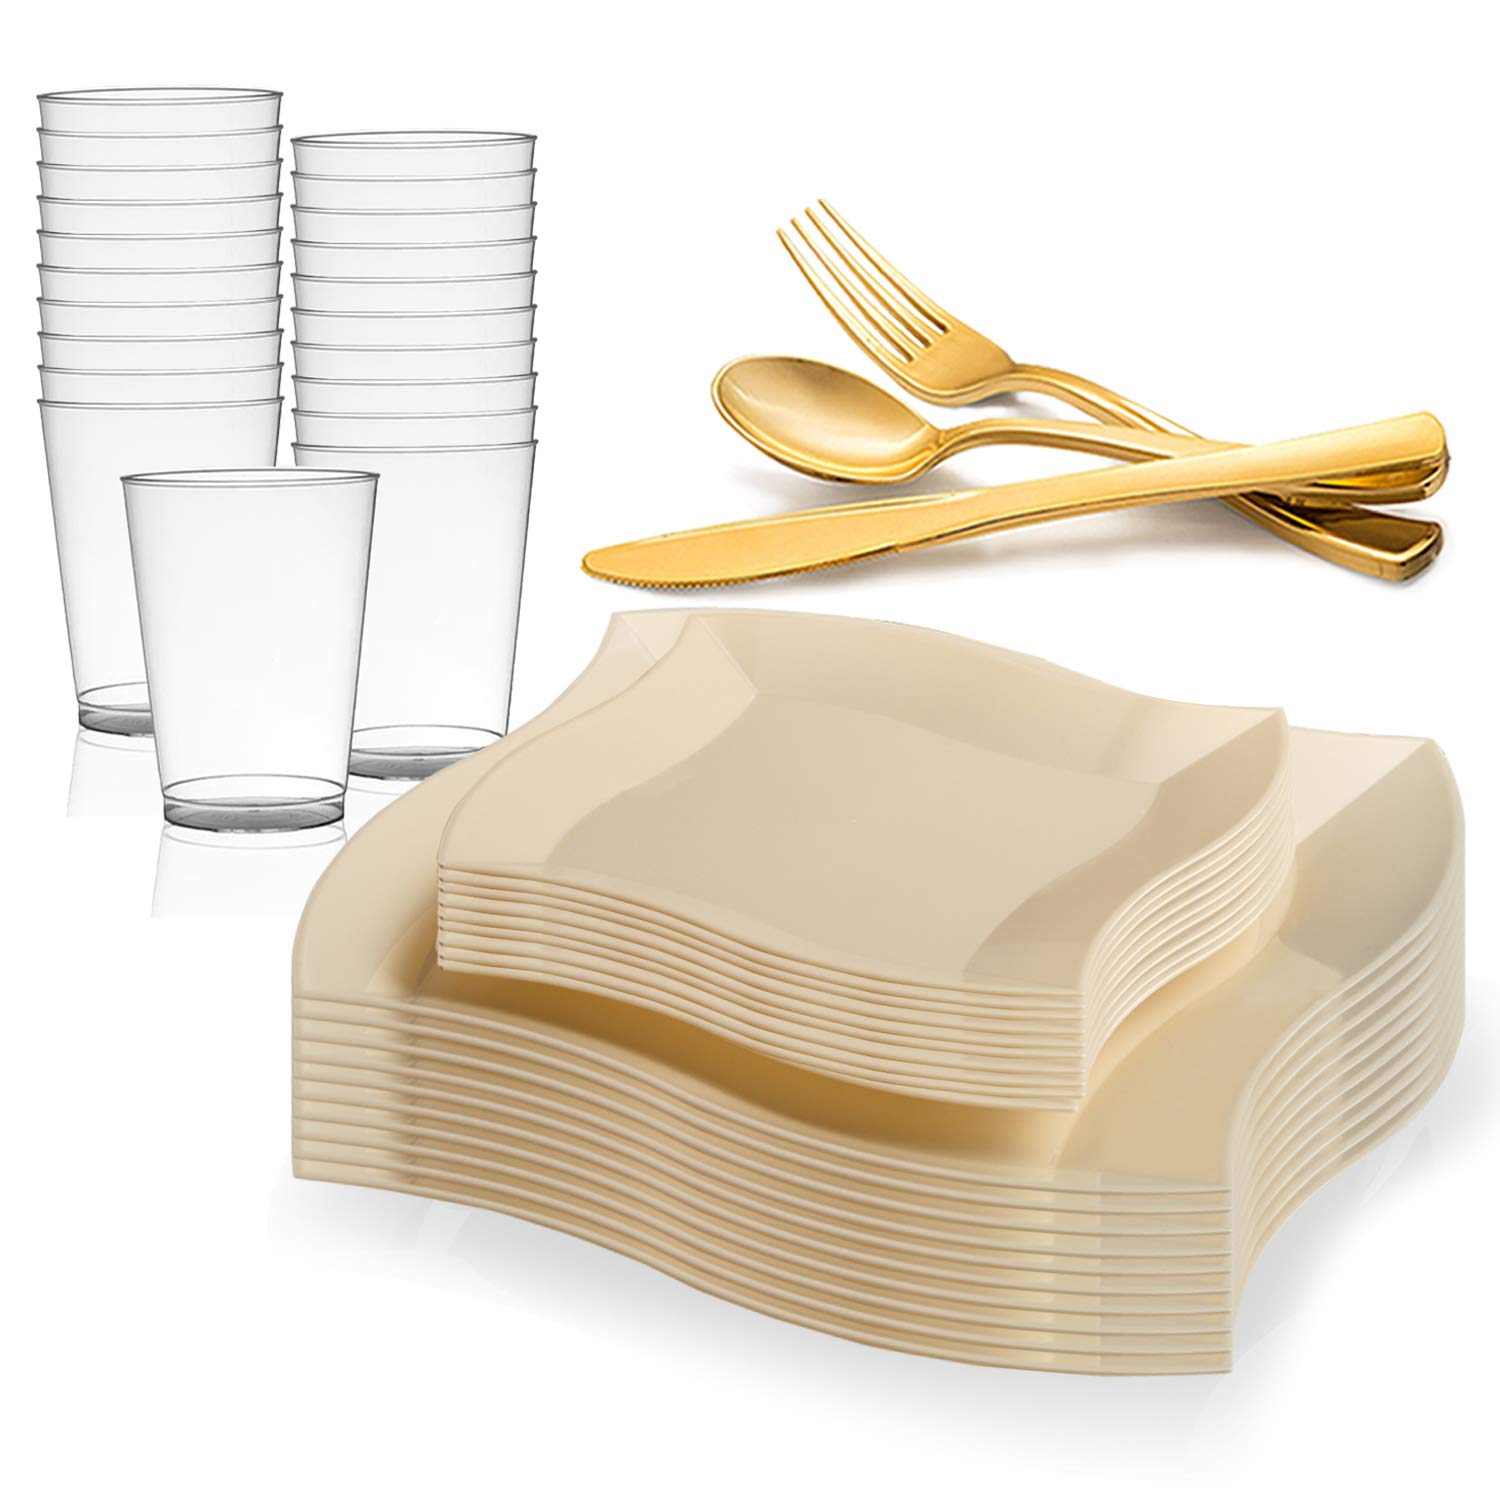 Elegant Disposable Plastic Dinnerware Set for 60 Guests - Includes Fancy Wave Ivory Dinner Plates, Dessert/Salad Plates, Gold Silverware/Cutlery & Cups For Wedding, Birthday Party & Other Occasions